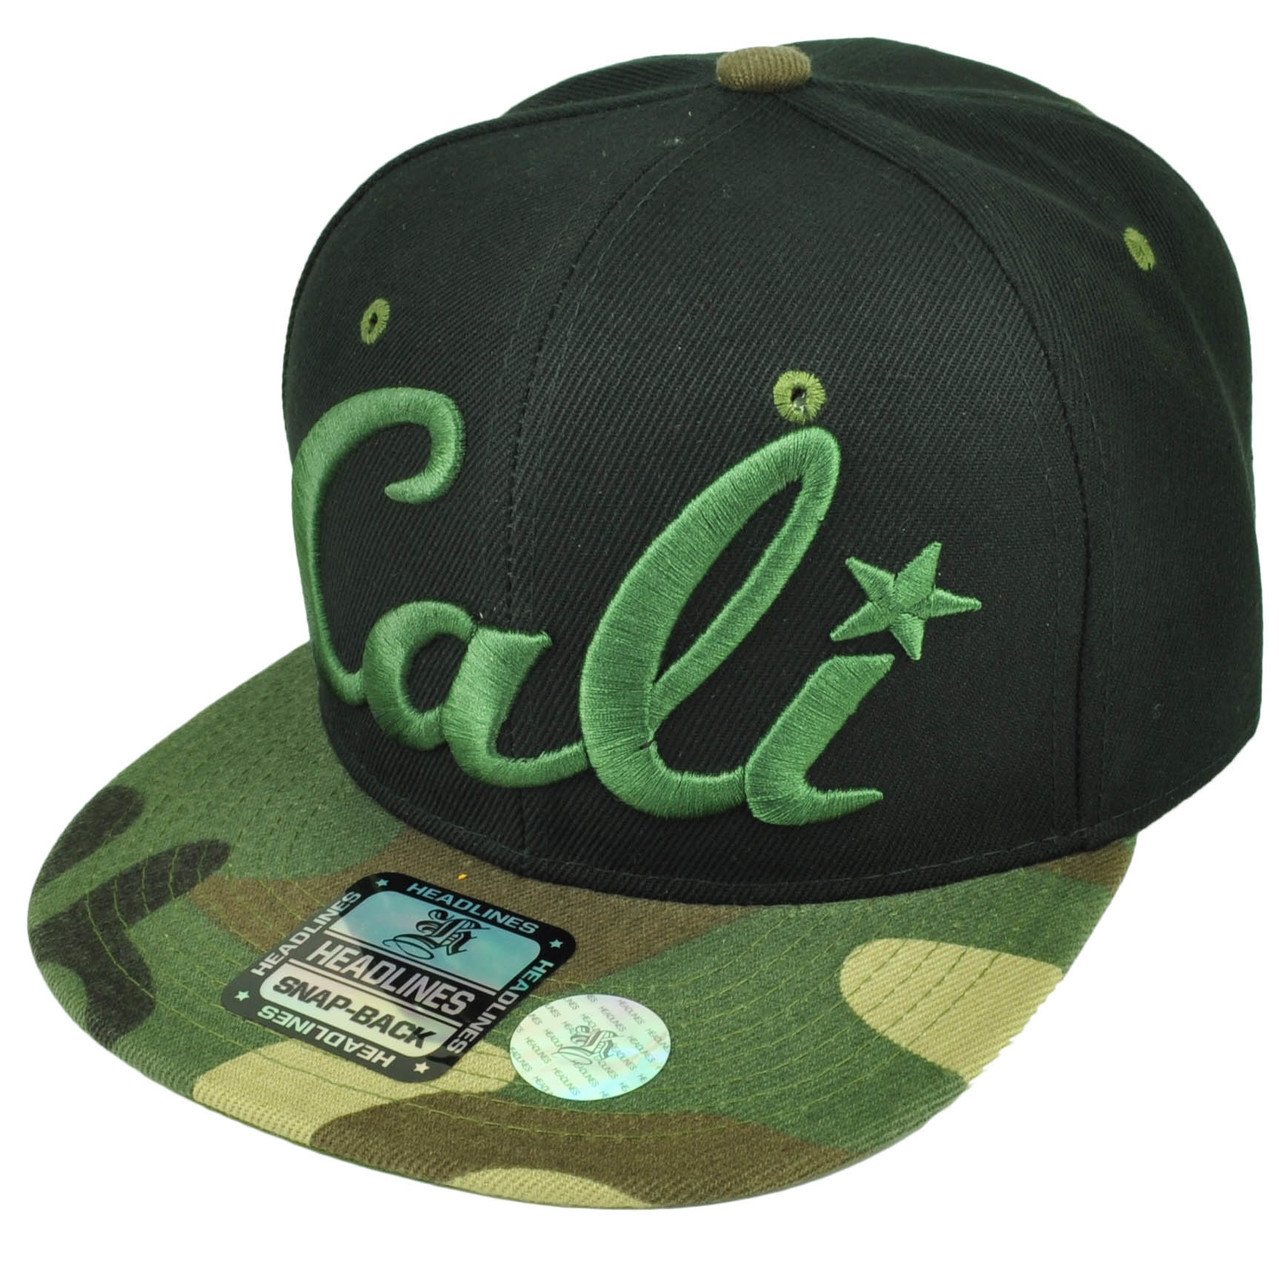 3c59b961634 California Cali Bear Republic Hat Cap Snapback Flat Bill State Camouflage  Camo. Your Price   15.95 (You save  12.05). Image 1